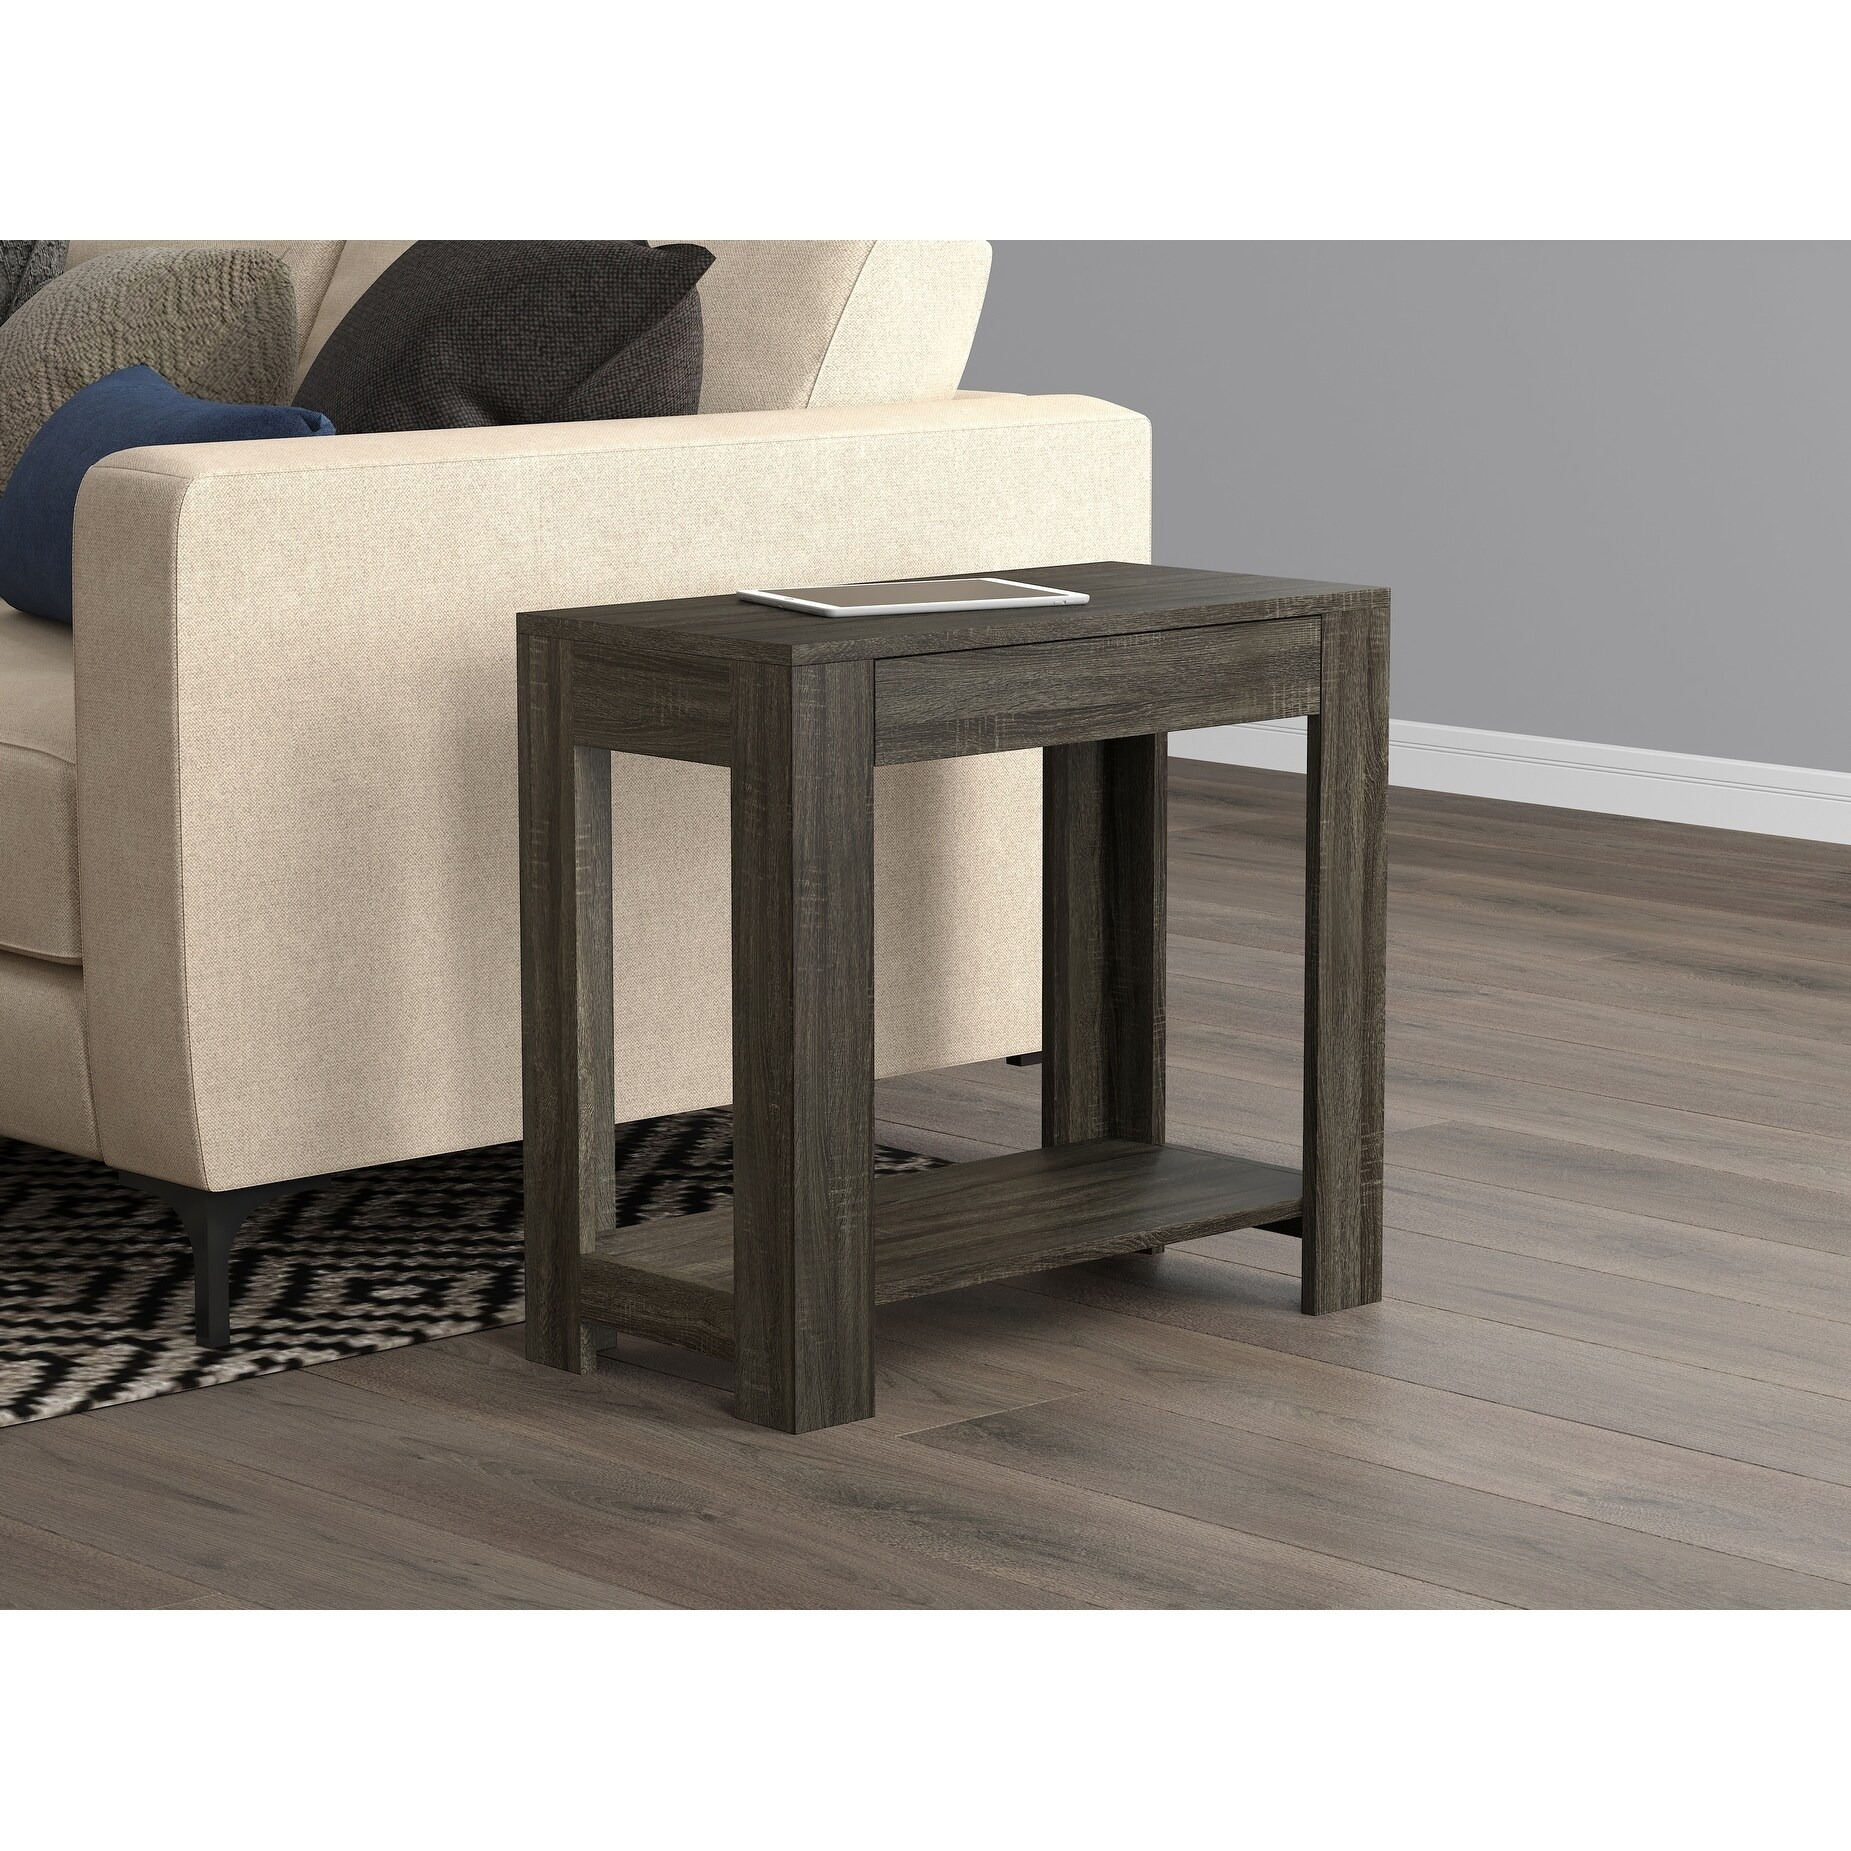 Shop Accent Table Grey With Drawer On Sale Free Shipping Today Overstock 28529639